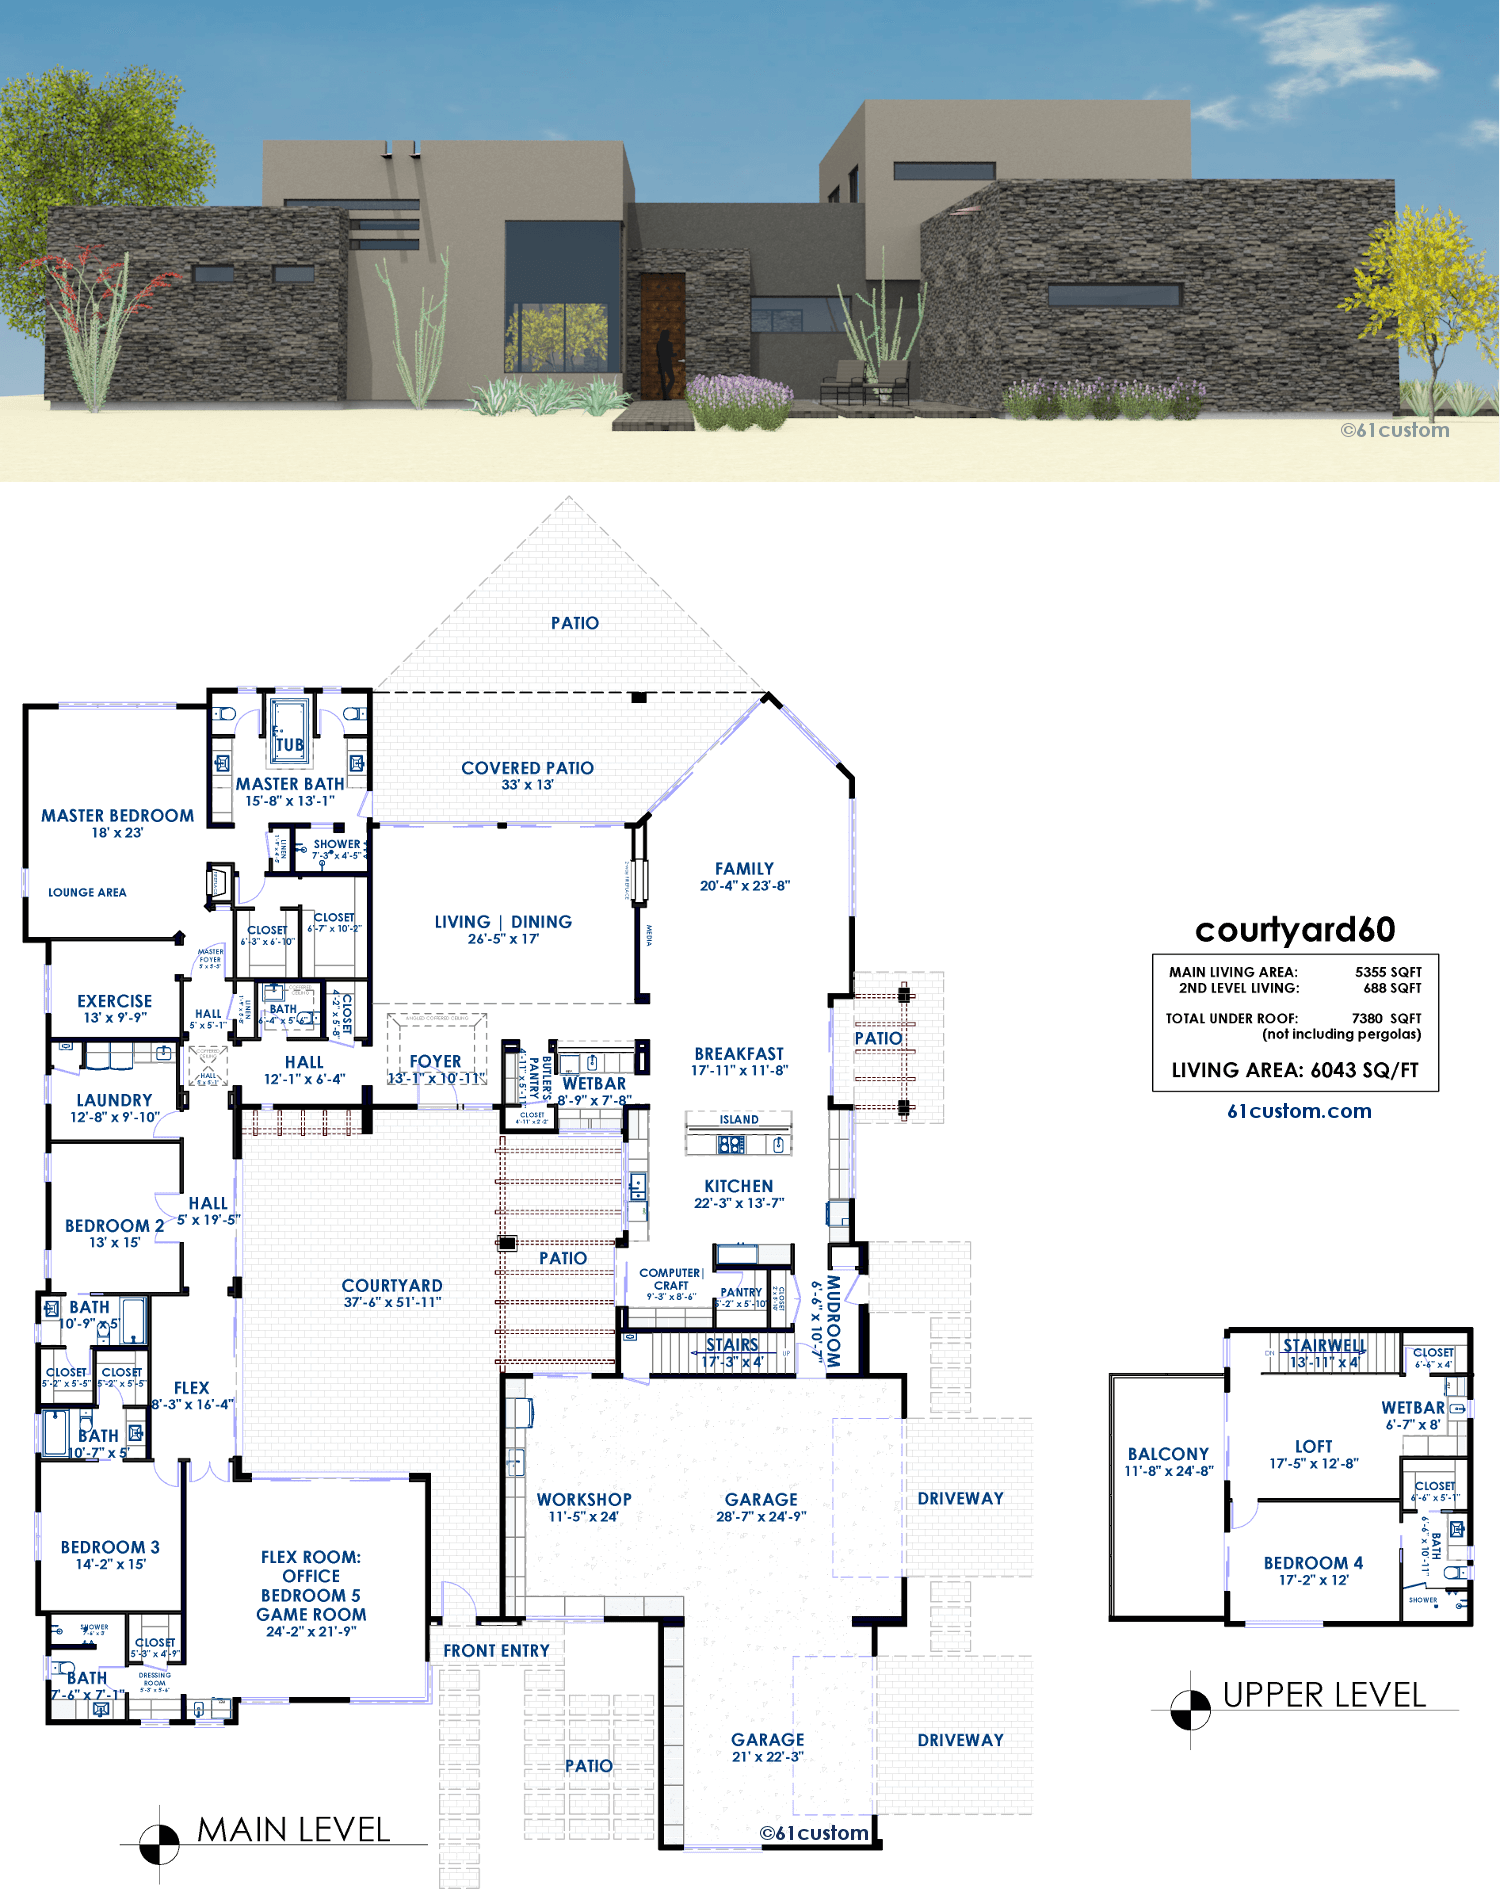 Courtyard60 luxury modern courtyard house plan for House plans with courtyard